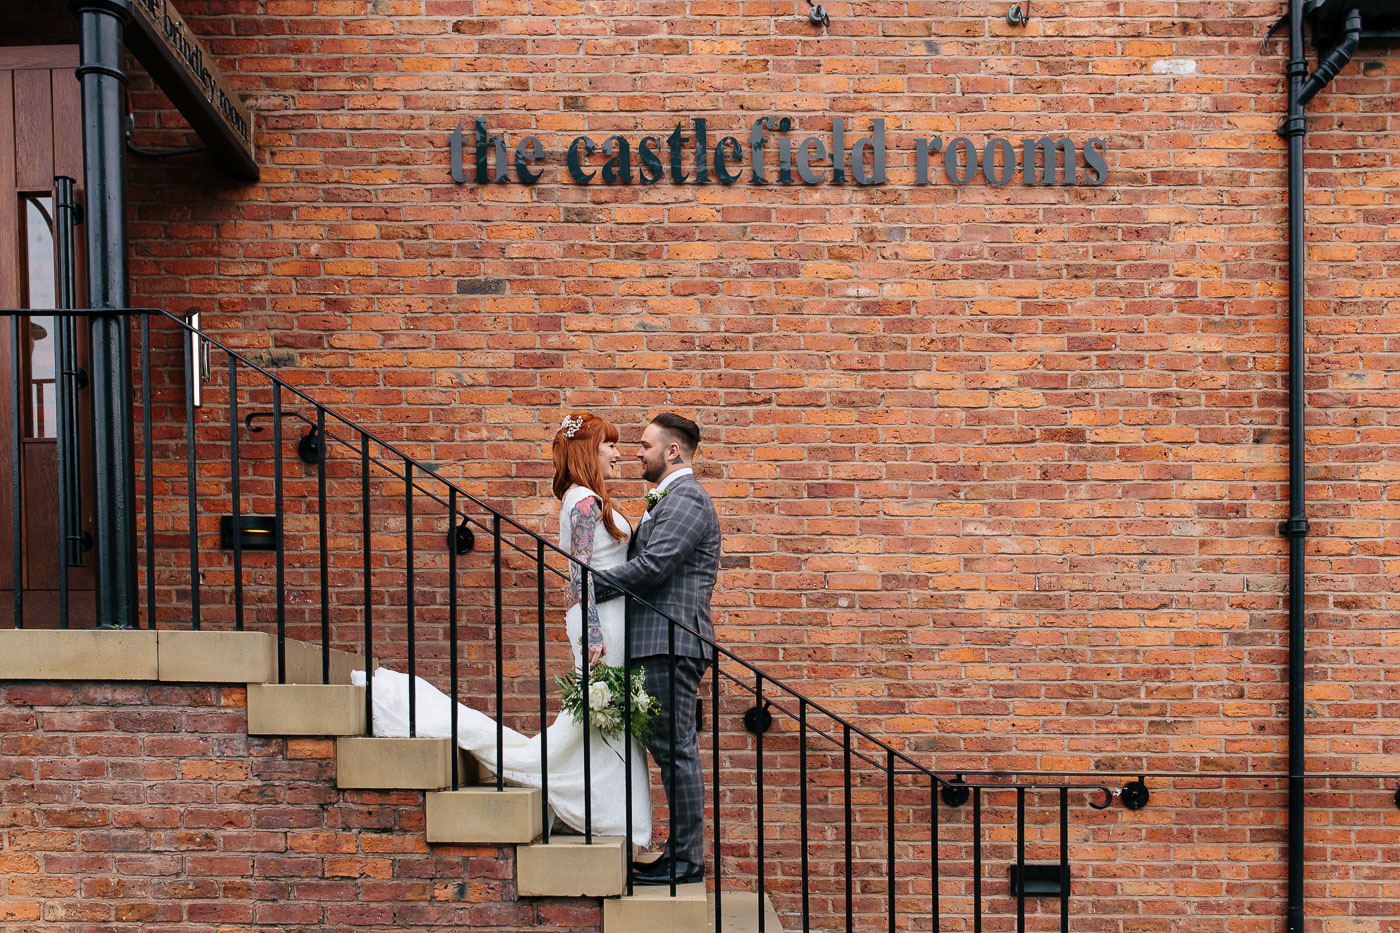 wedding photography at the castlefield rooms